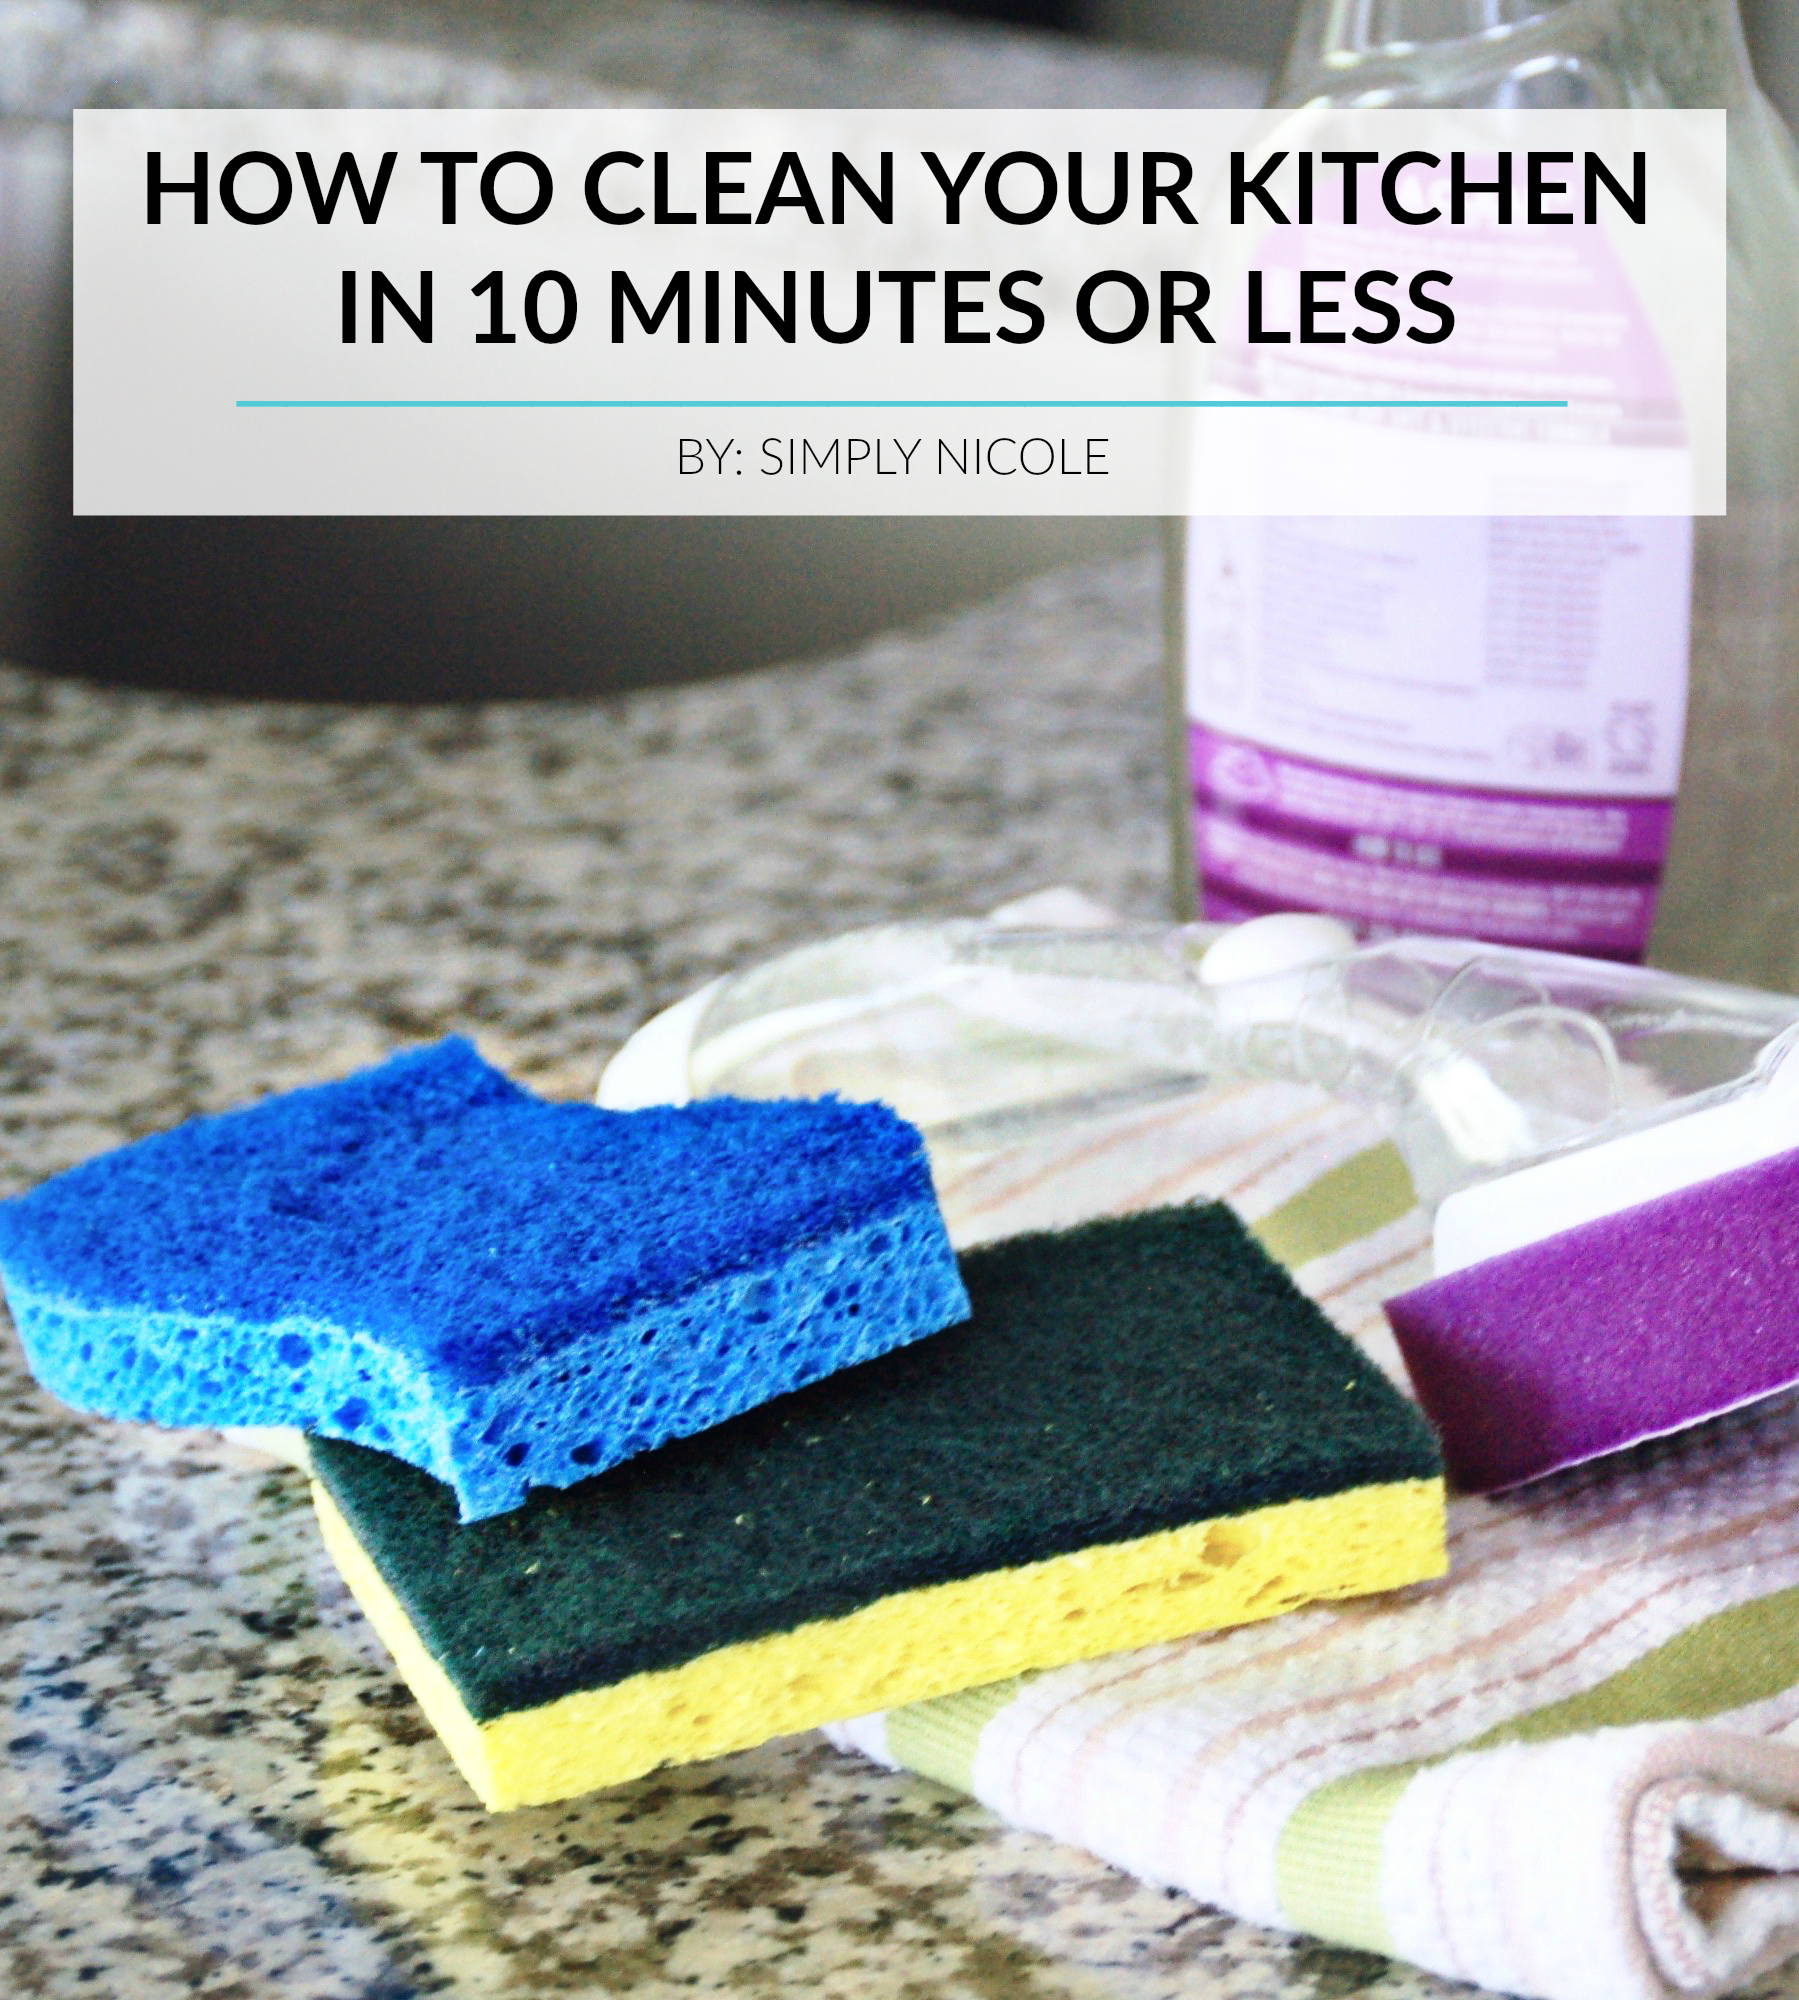 clean kitchen in 10 minutes or less